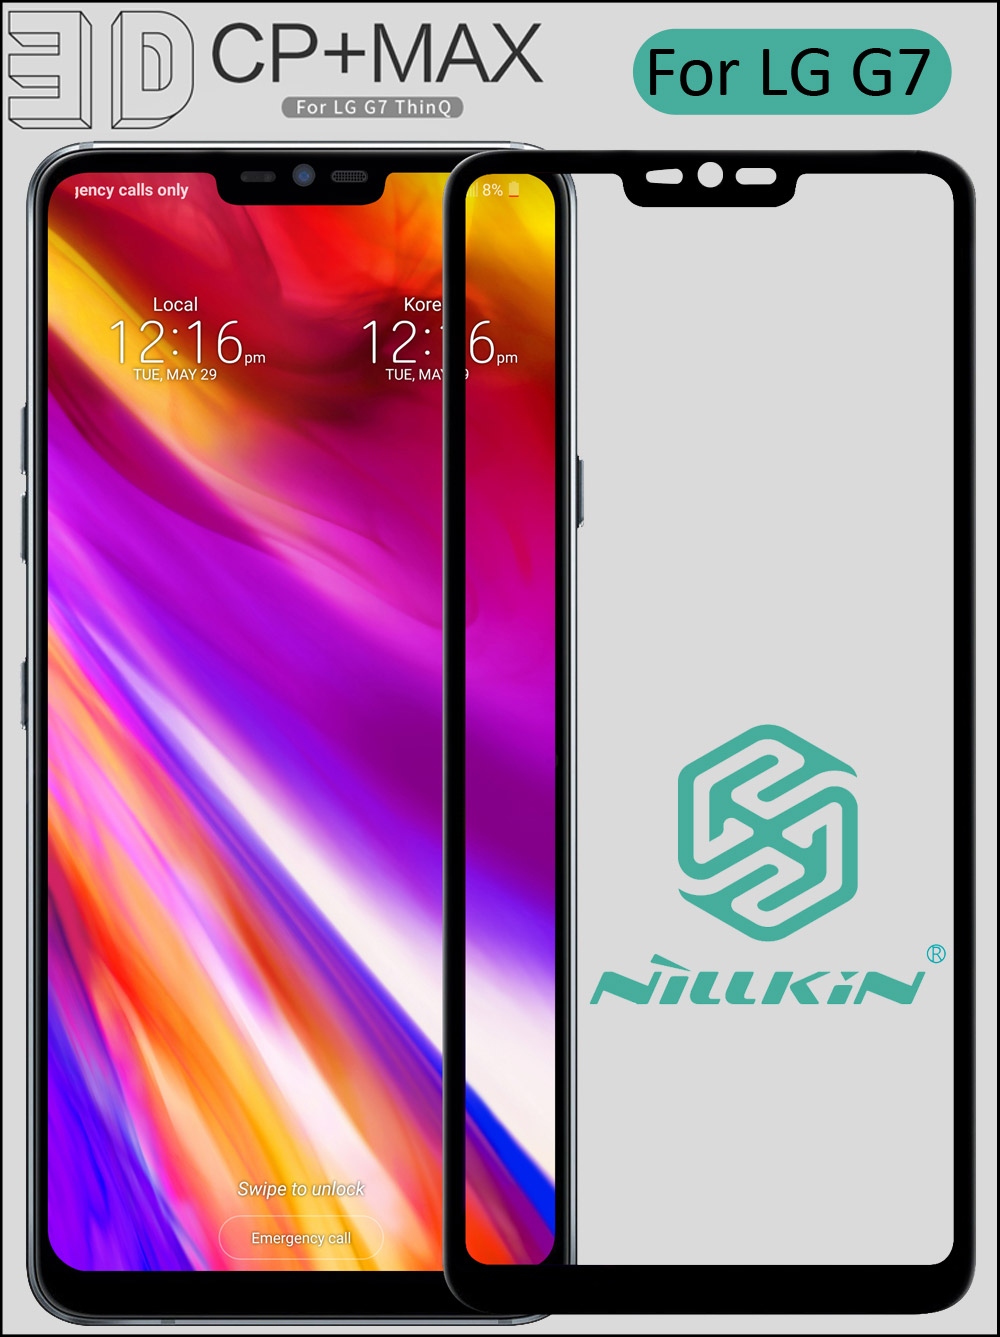 Nillkin 3D CP+ Max Tempered Glass For LG G7 ThinQ Full Screen Cover Curved Protective oleophobic